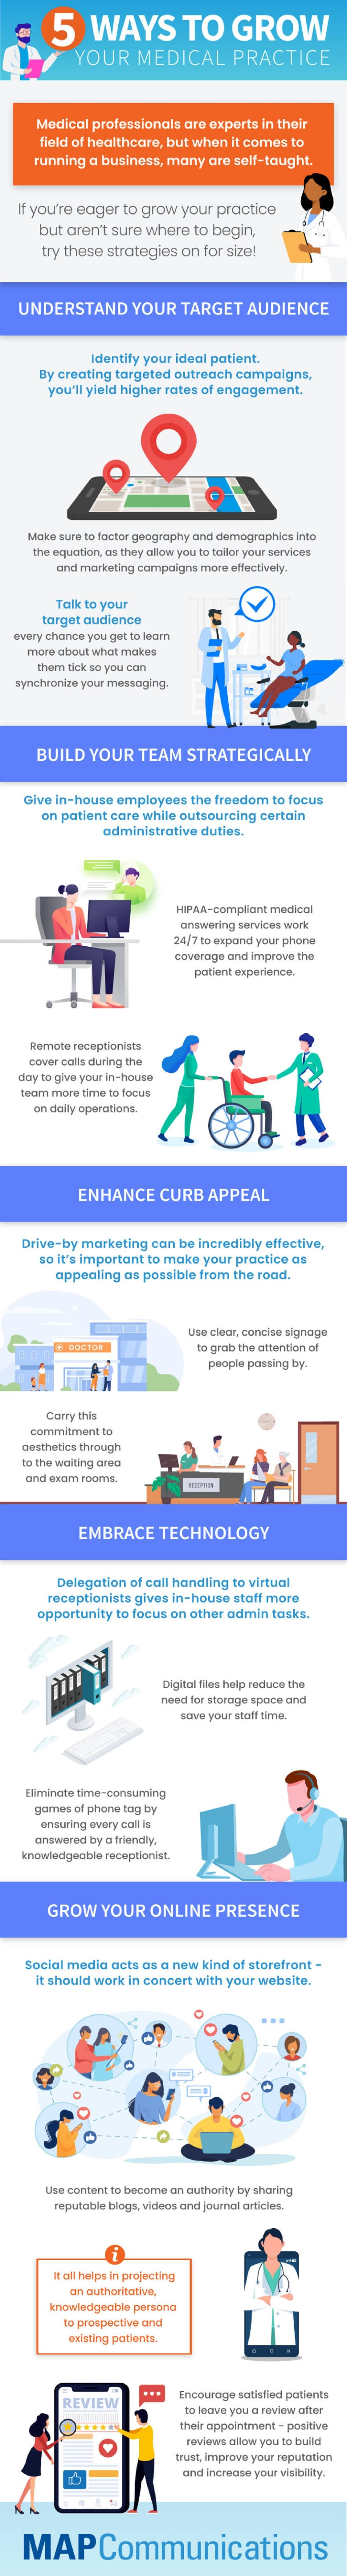 5-ways-to-grow-your-medical-practice-infographic